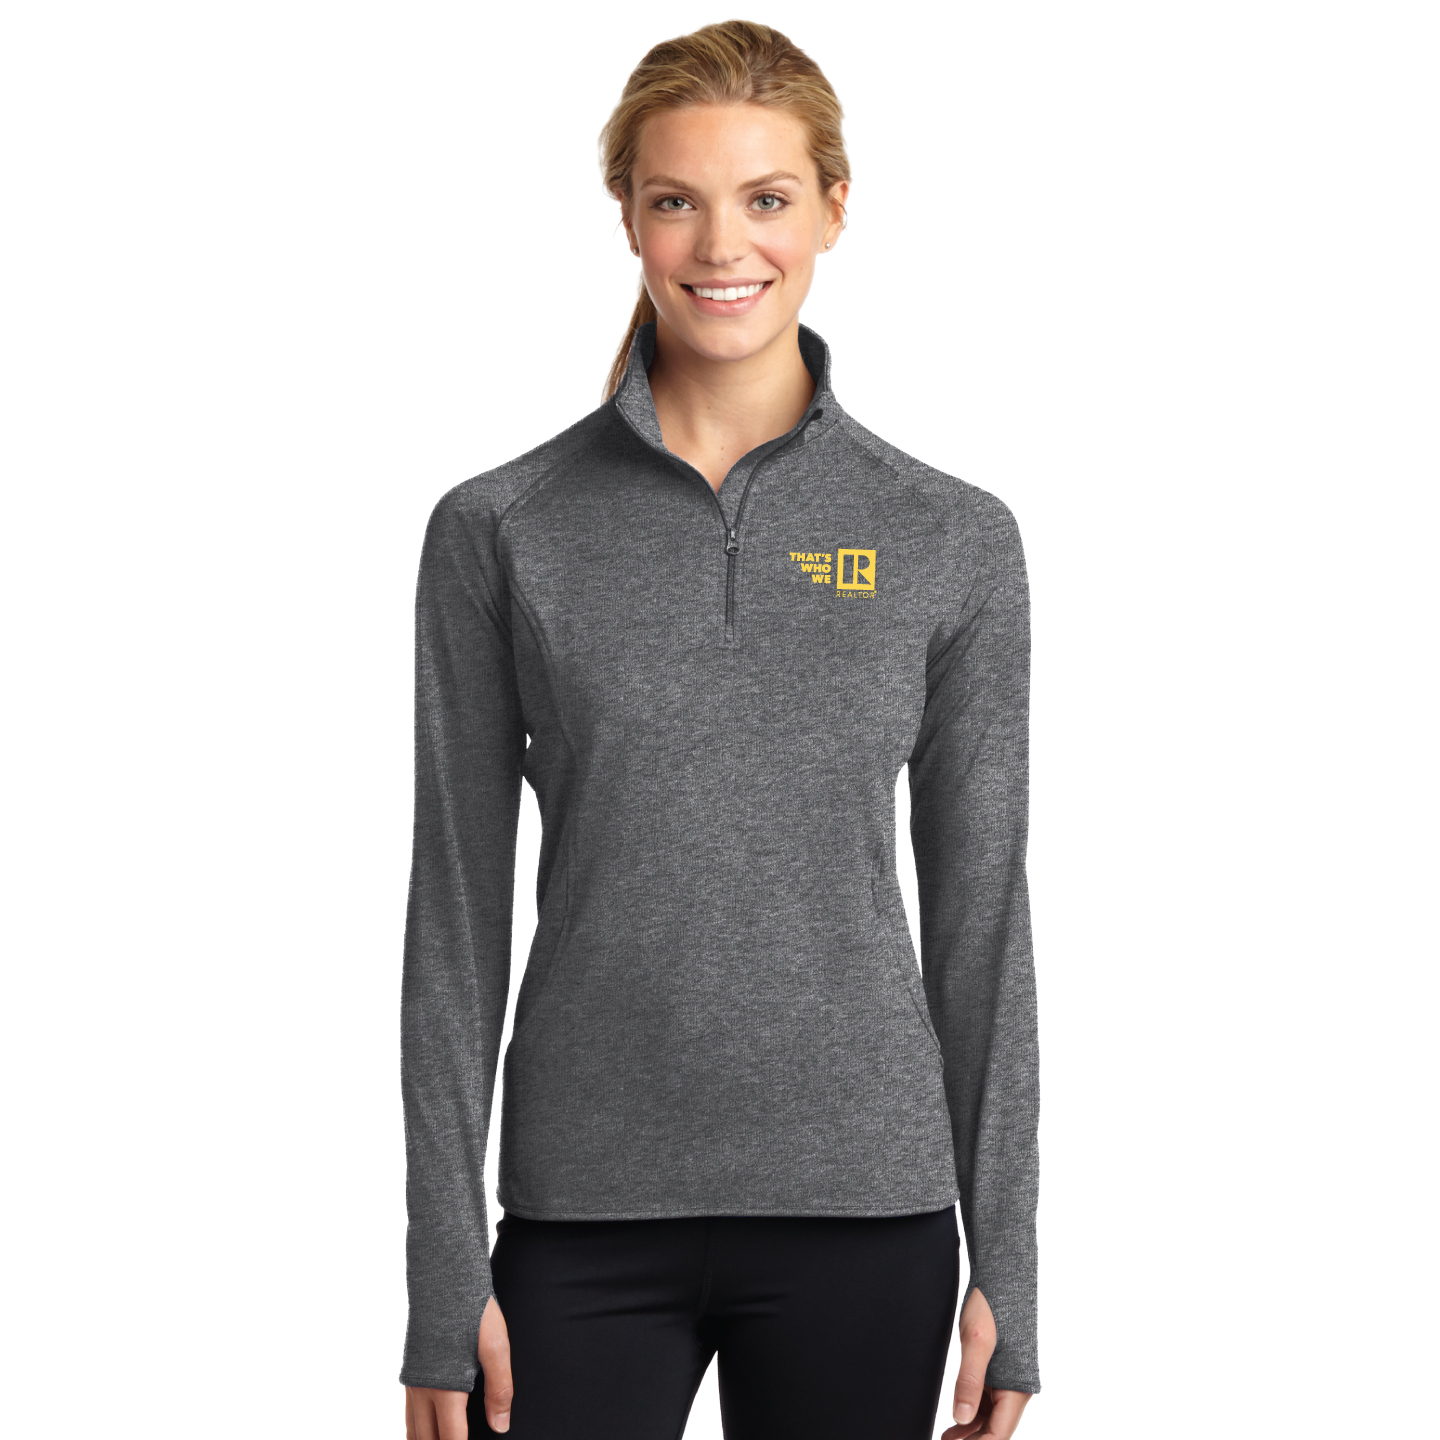 """Thats Who We R"" Ladies Sport Stretch 1/2 Zip Pullover twwr,ThatsWhoWeR,Thats,TWWR,ThatWho,ThatsWho,Twwr,Thats,Whos,We,Ares,TWWR,Thats,Whos,Are,Pullover,Fleece,Long Sleeve"